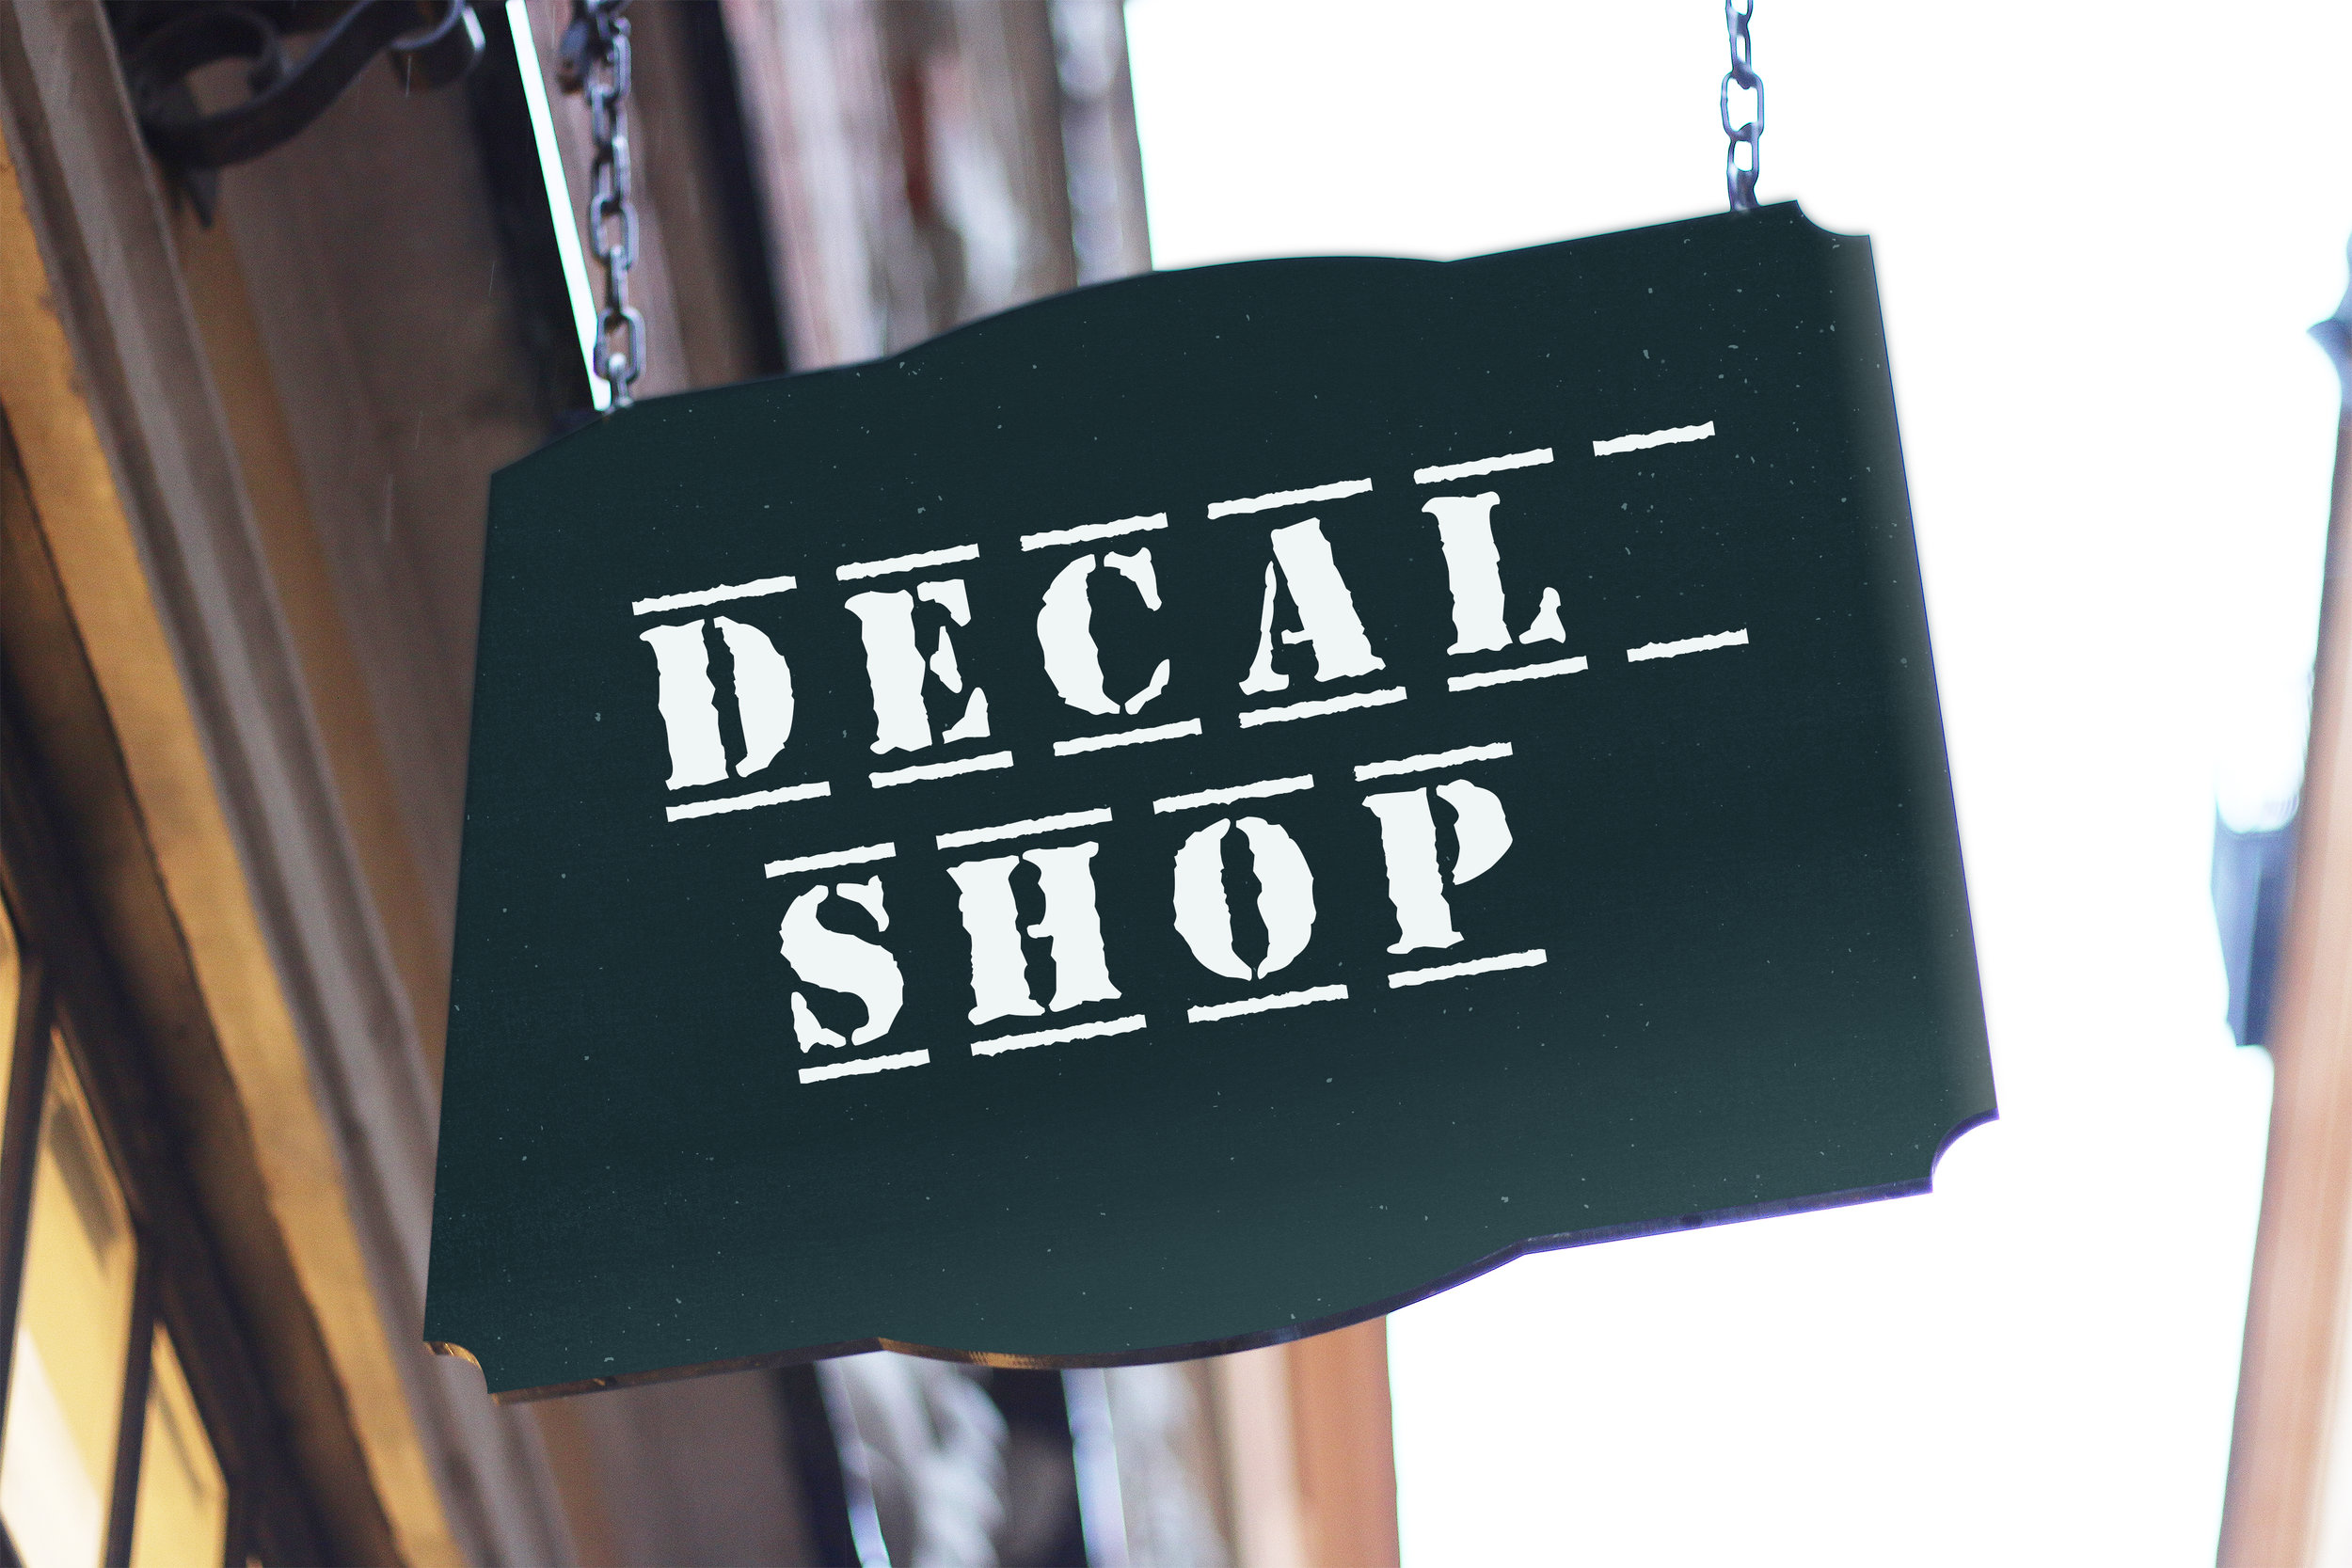 Decal shop - Vinyl decals for auto windows or any other smooth surface.